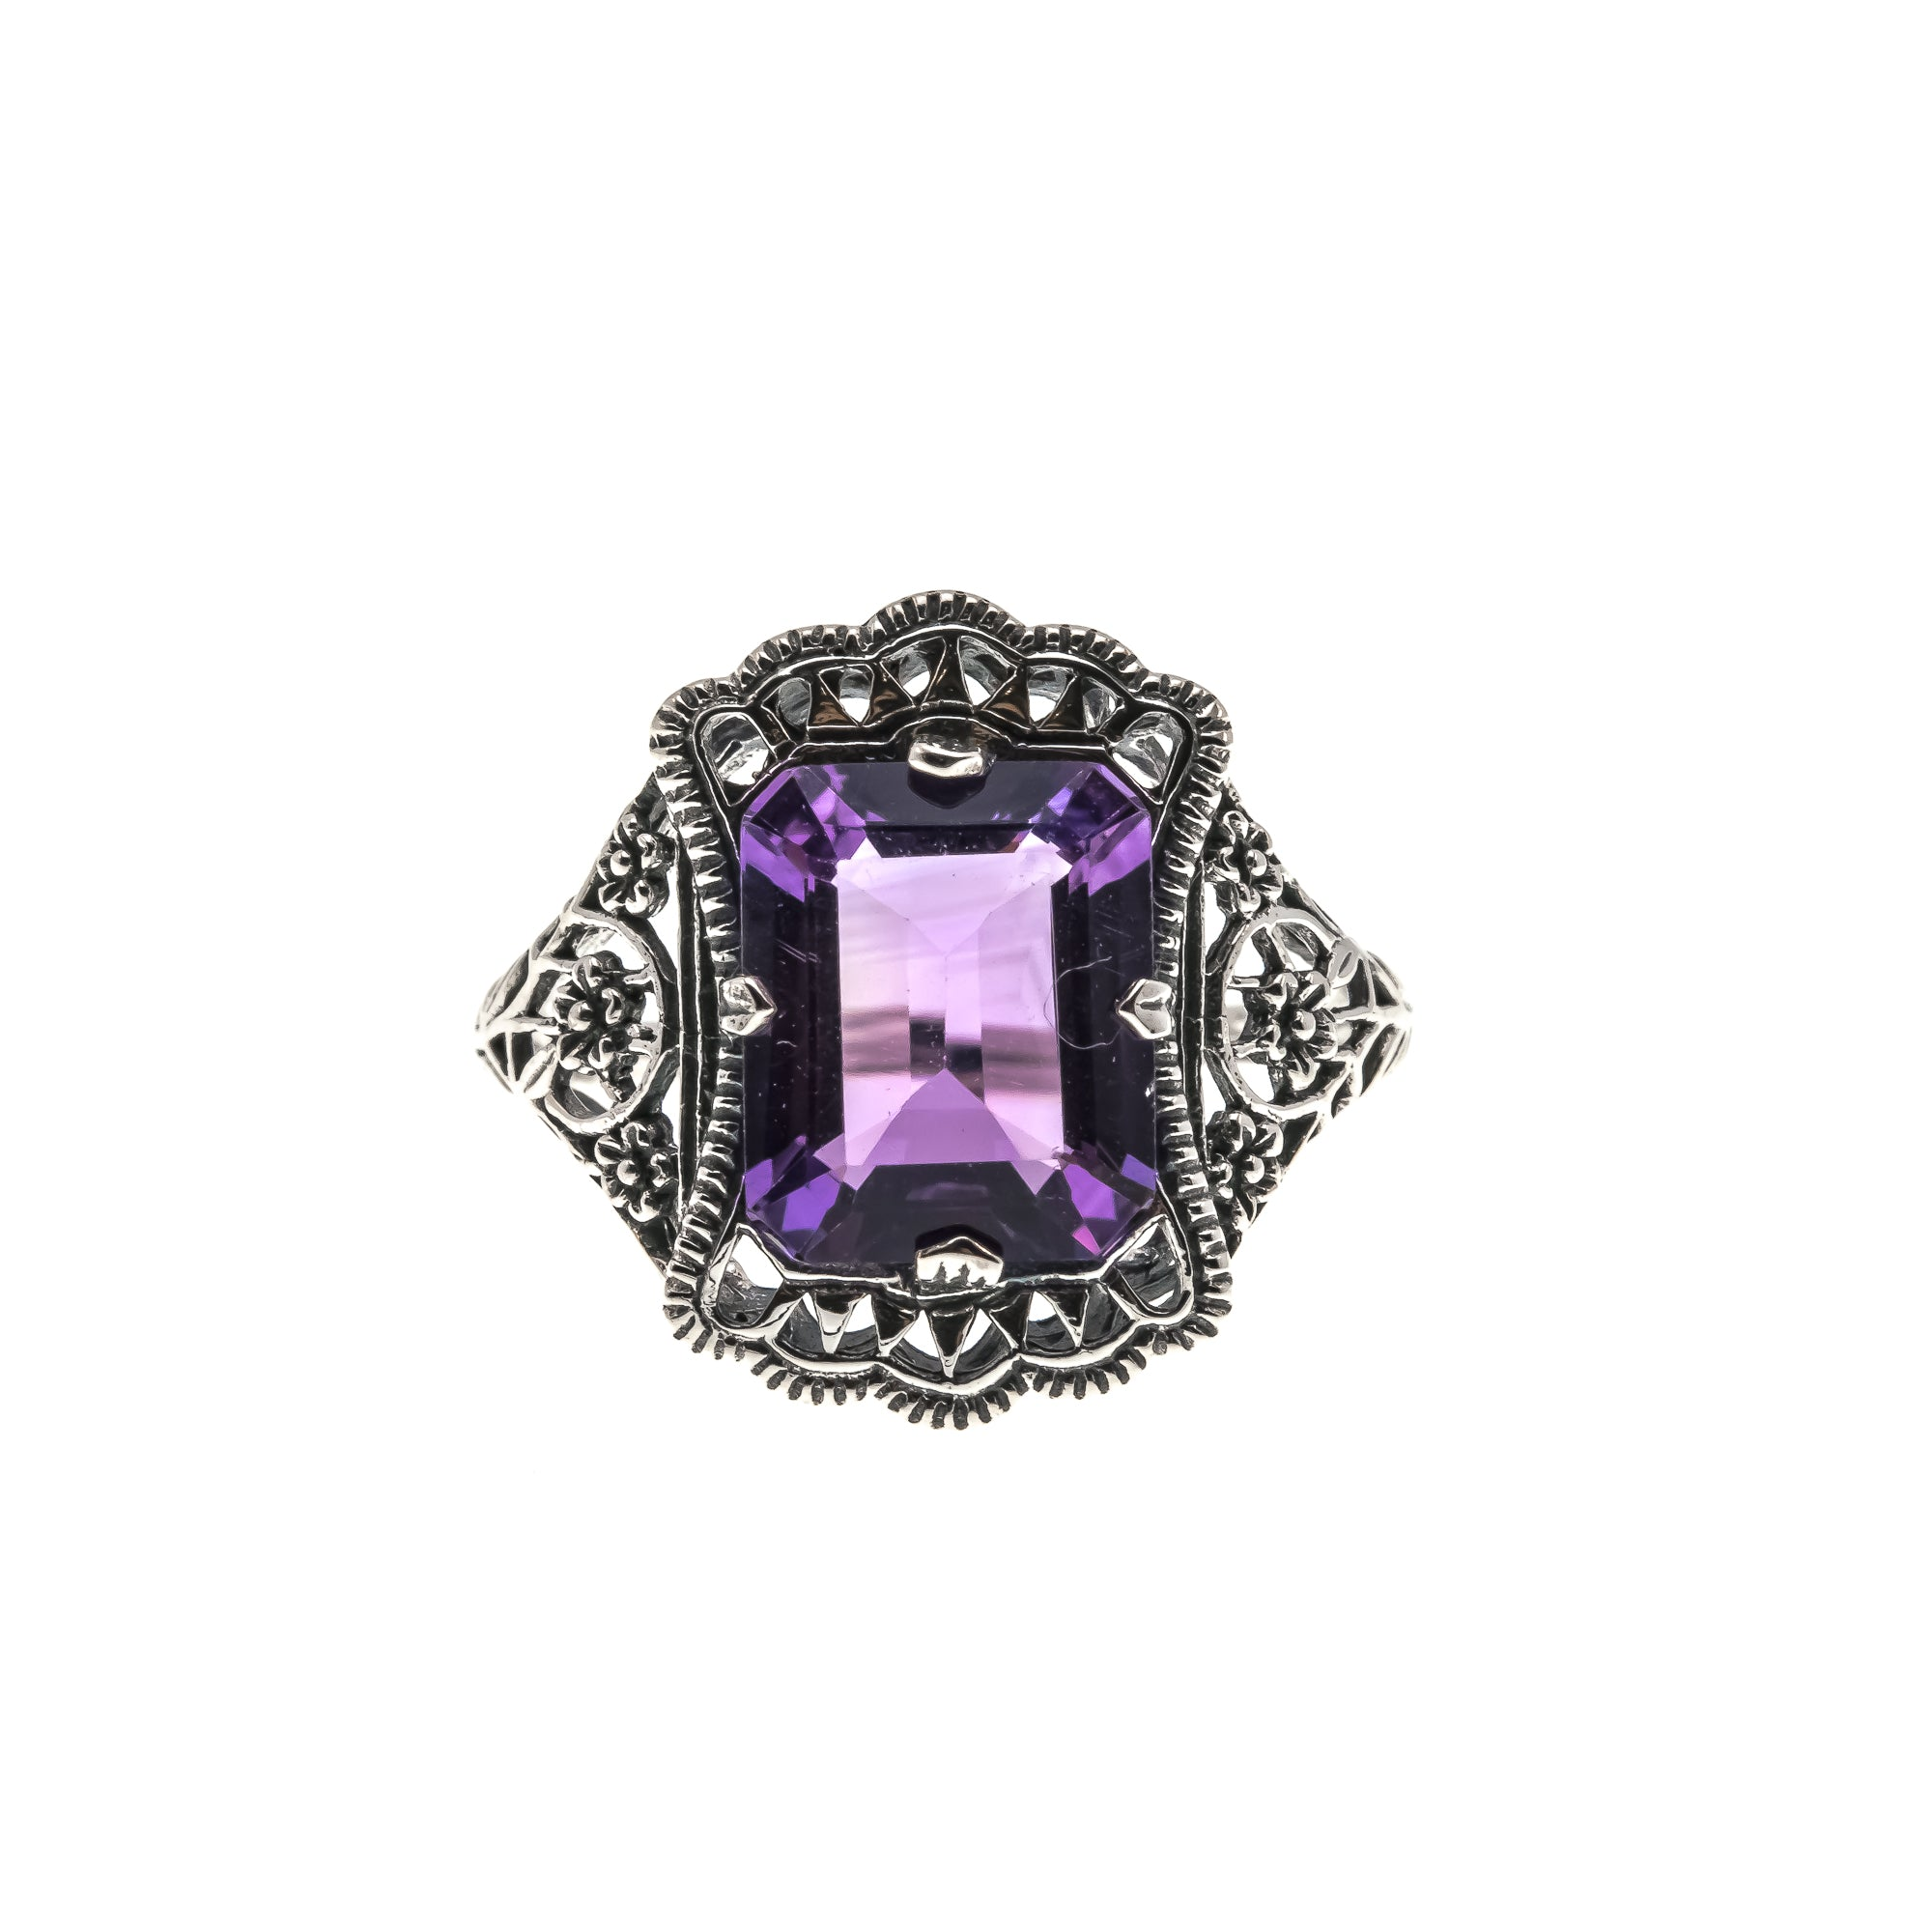 Fantasy & Lace - Estate Sterling Silver Amethyst Filigree Ring